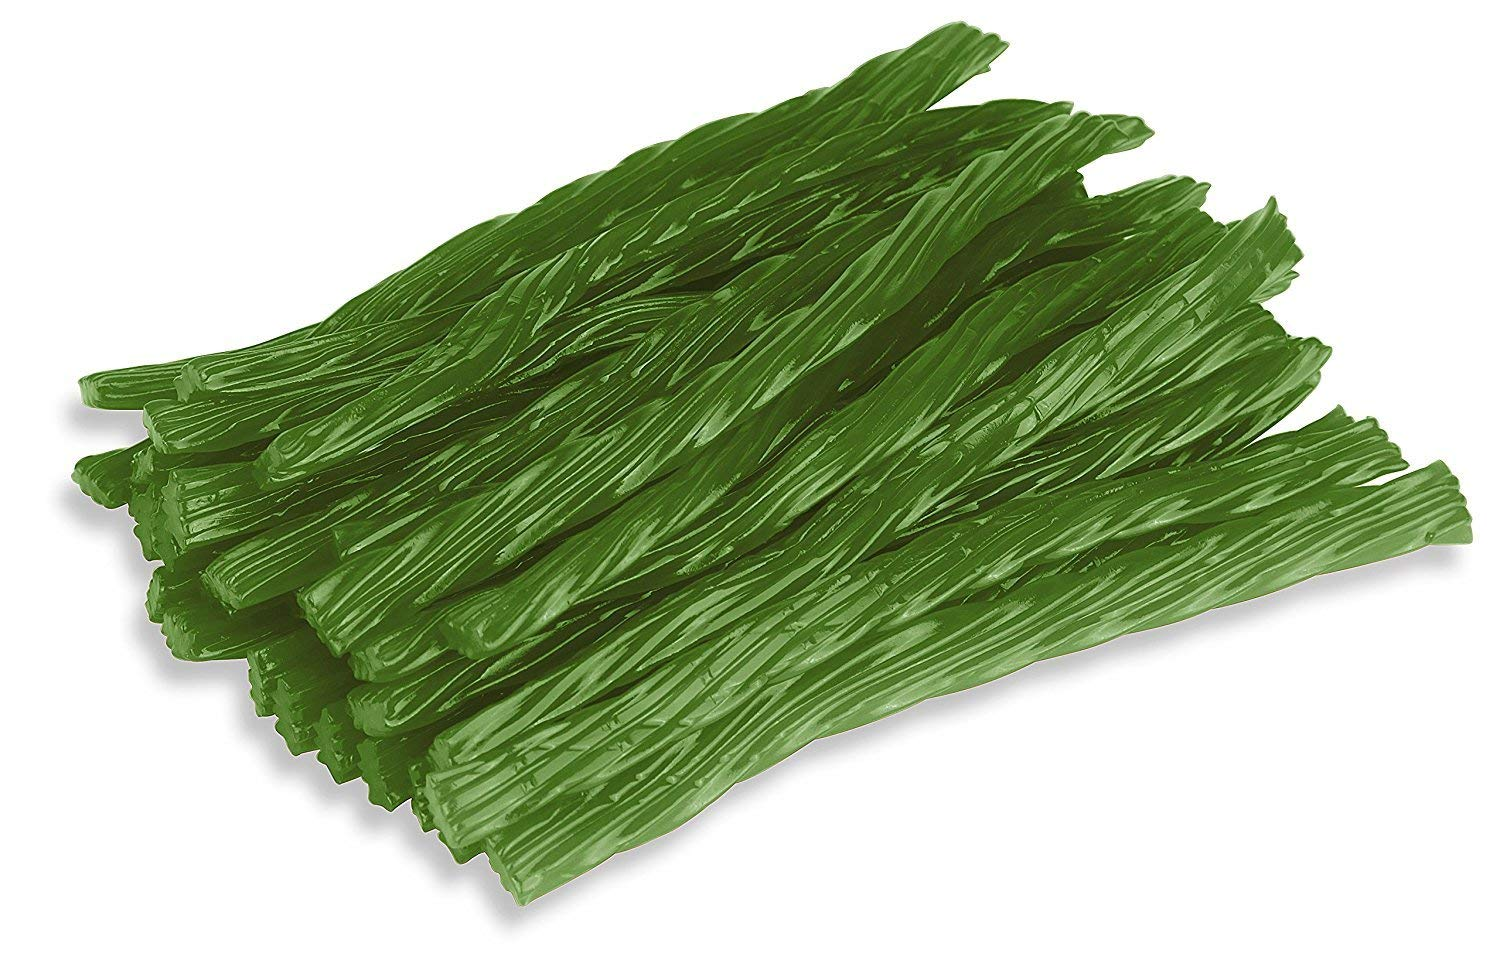 Happy Bites Green Apple Licorice Twists - Certified Kosher - Gourmet - Low Fat - Made with Real Fruit Juice - 1 Pound Bag (16 oz)